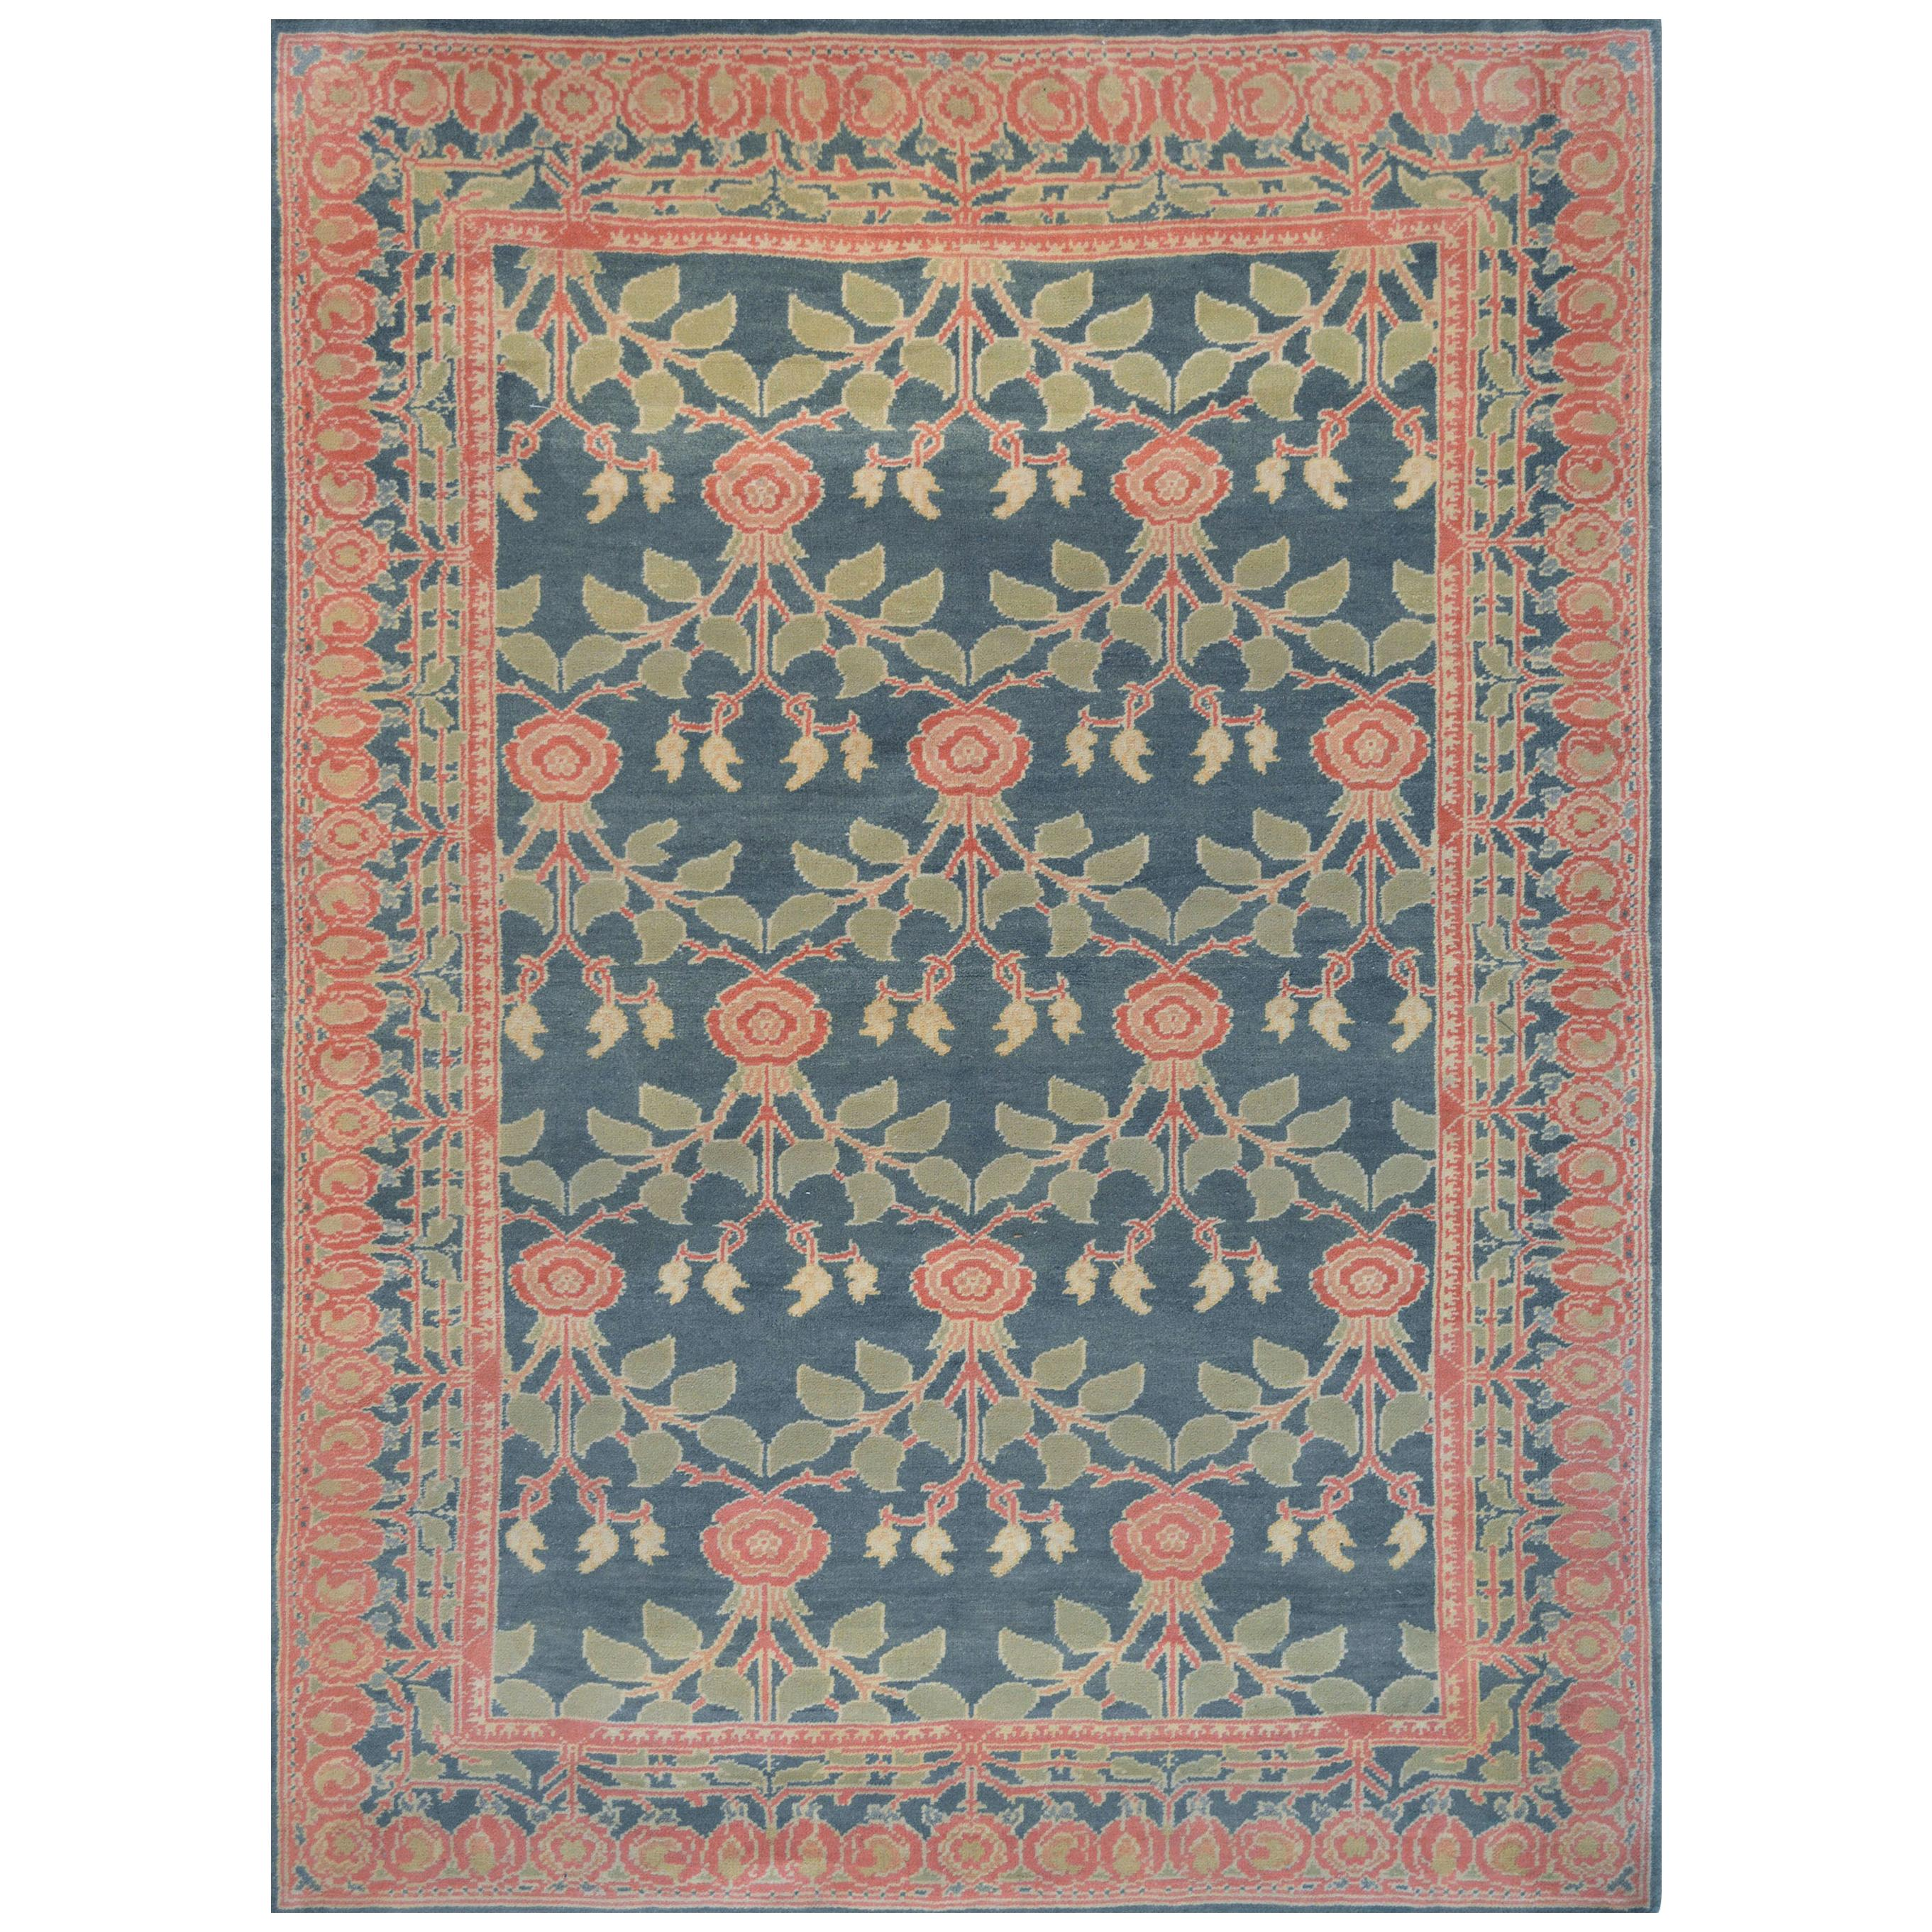 Handwoven Arts & Crafts Rug